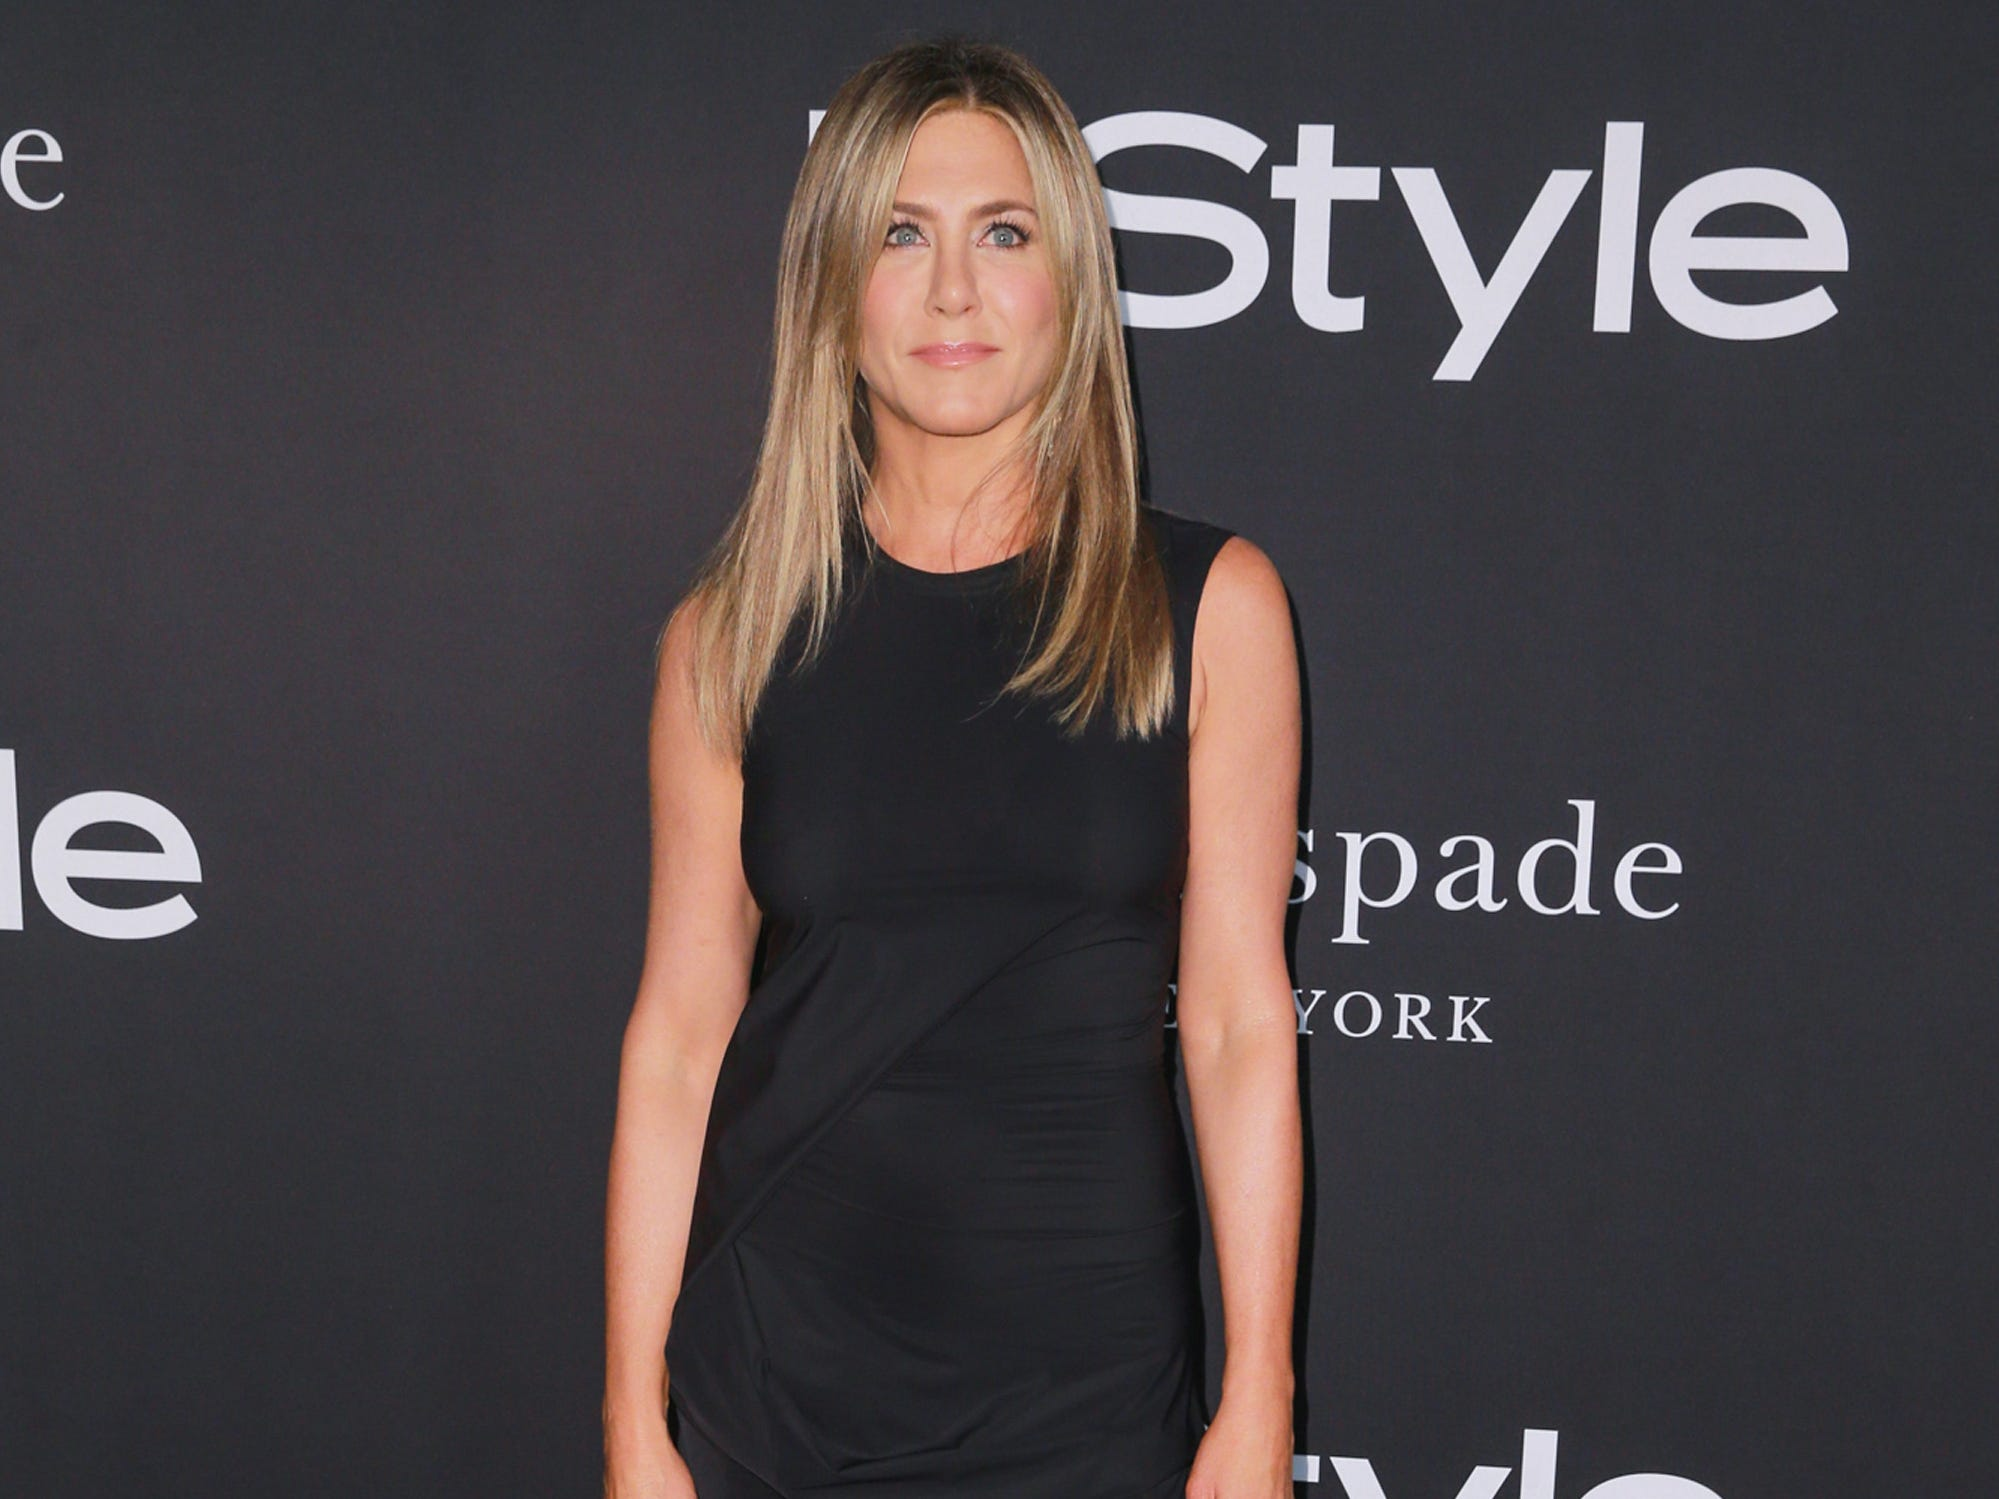 LOS ANGELES, CA - OCTOBER 22:  Jennifer Aniston attends the 2018 InStyle Awards at The Getty Center on October 22, 2018 in Los Angeles, California.  (Photo by Rich Fury/Getty Images) ORG XMIT: 775236597 ORIG FILE ID: 1052792872